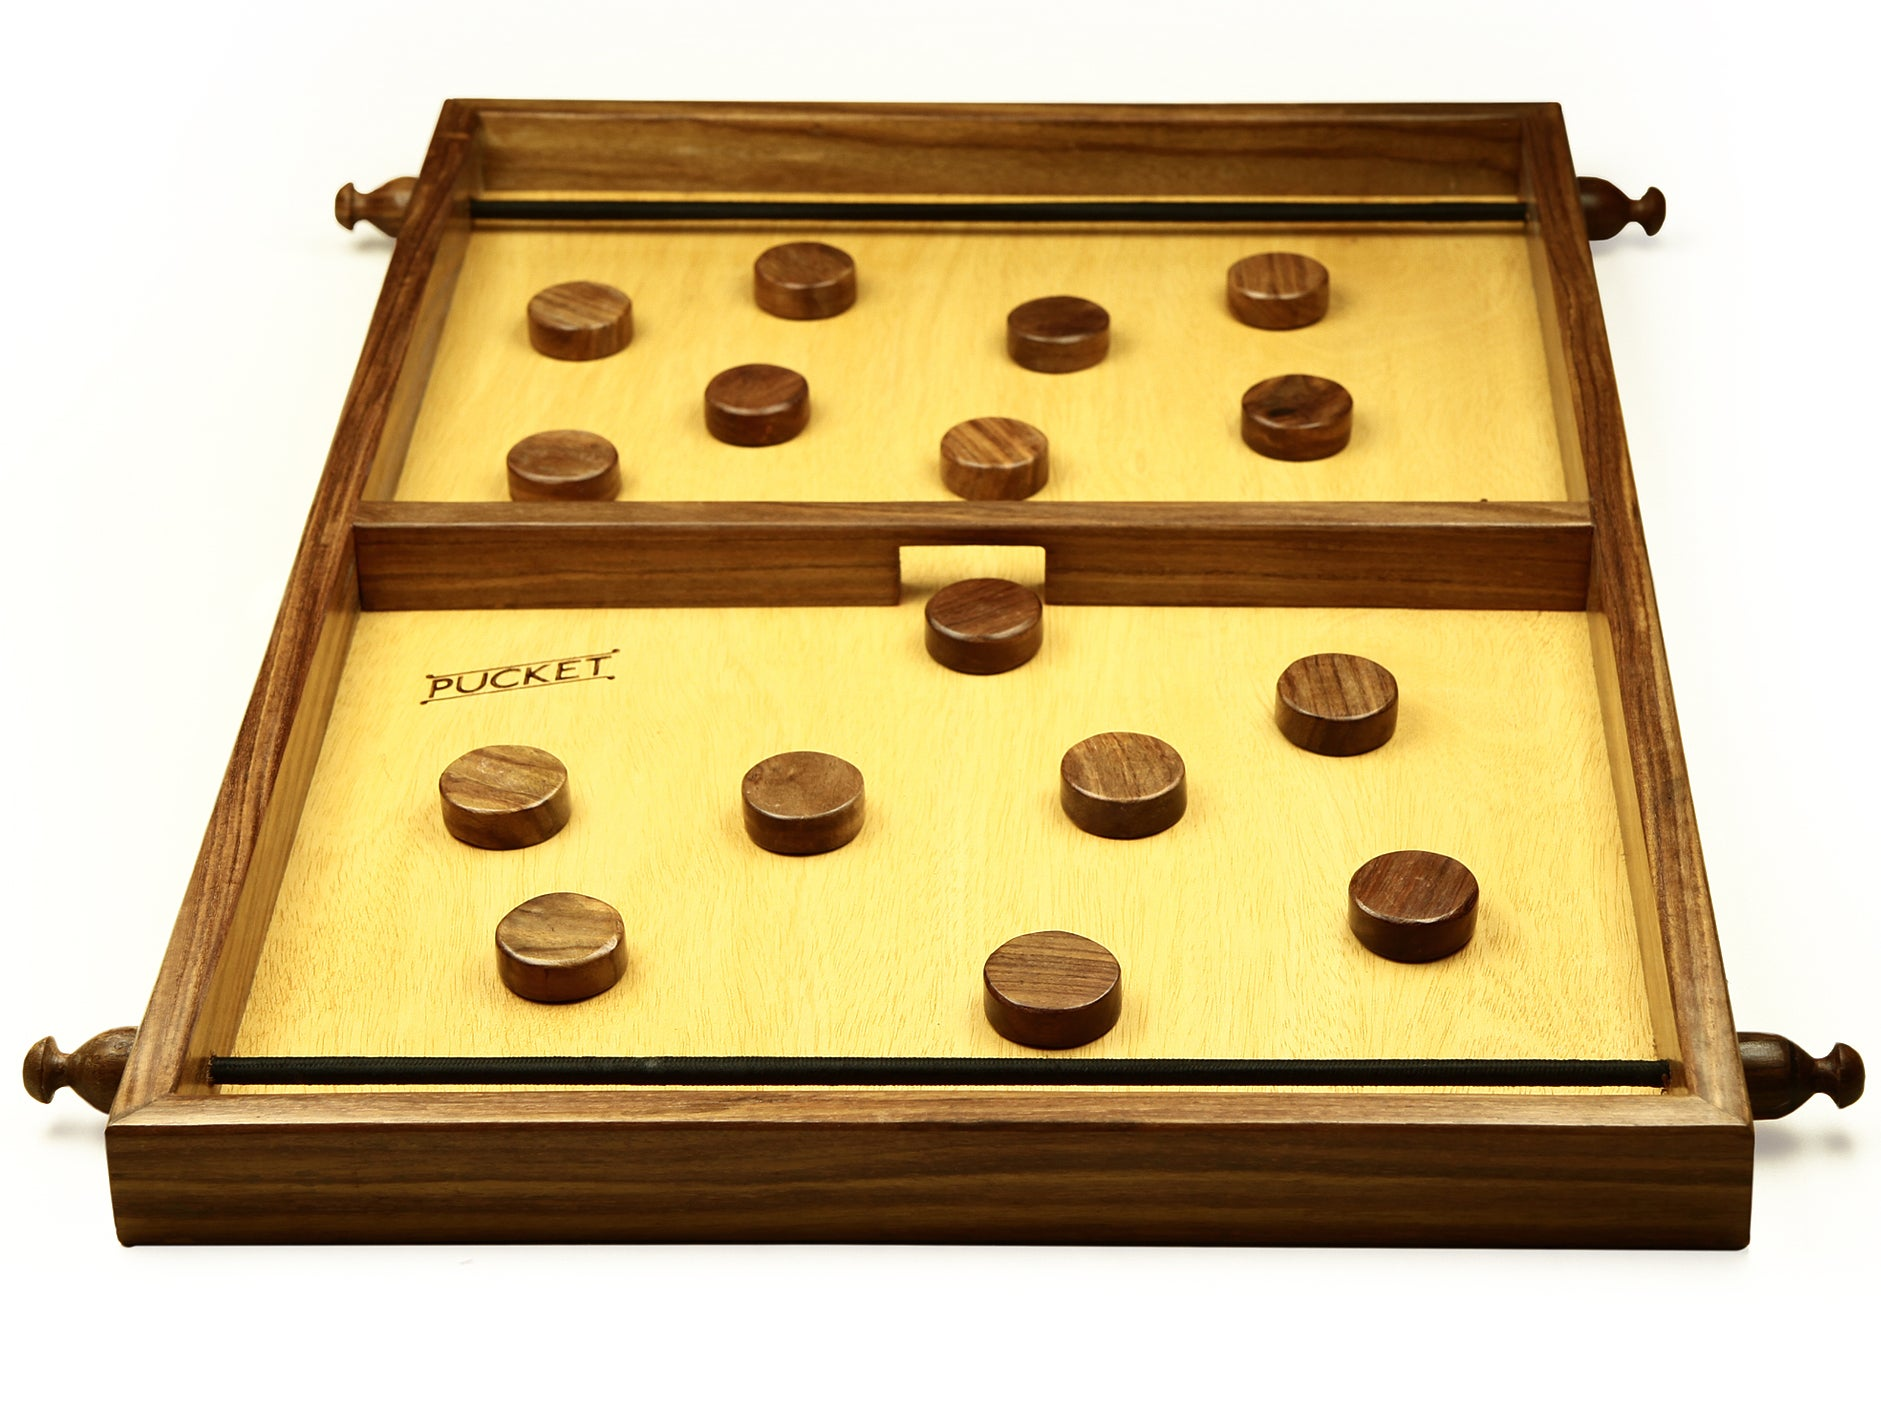 catapult the family into a screen free christmas with pucket a high speed wooden board game that brings out the competitive streak in all comers - Best Christmas Gifts For Kids 2014